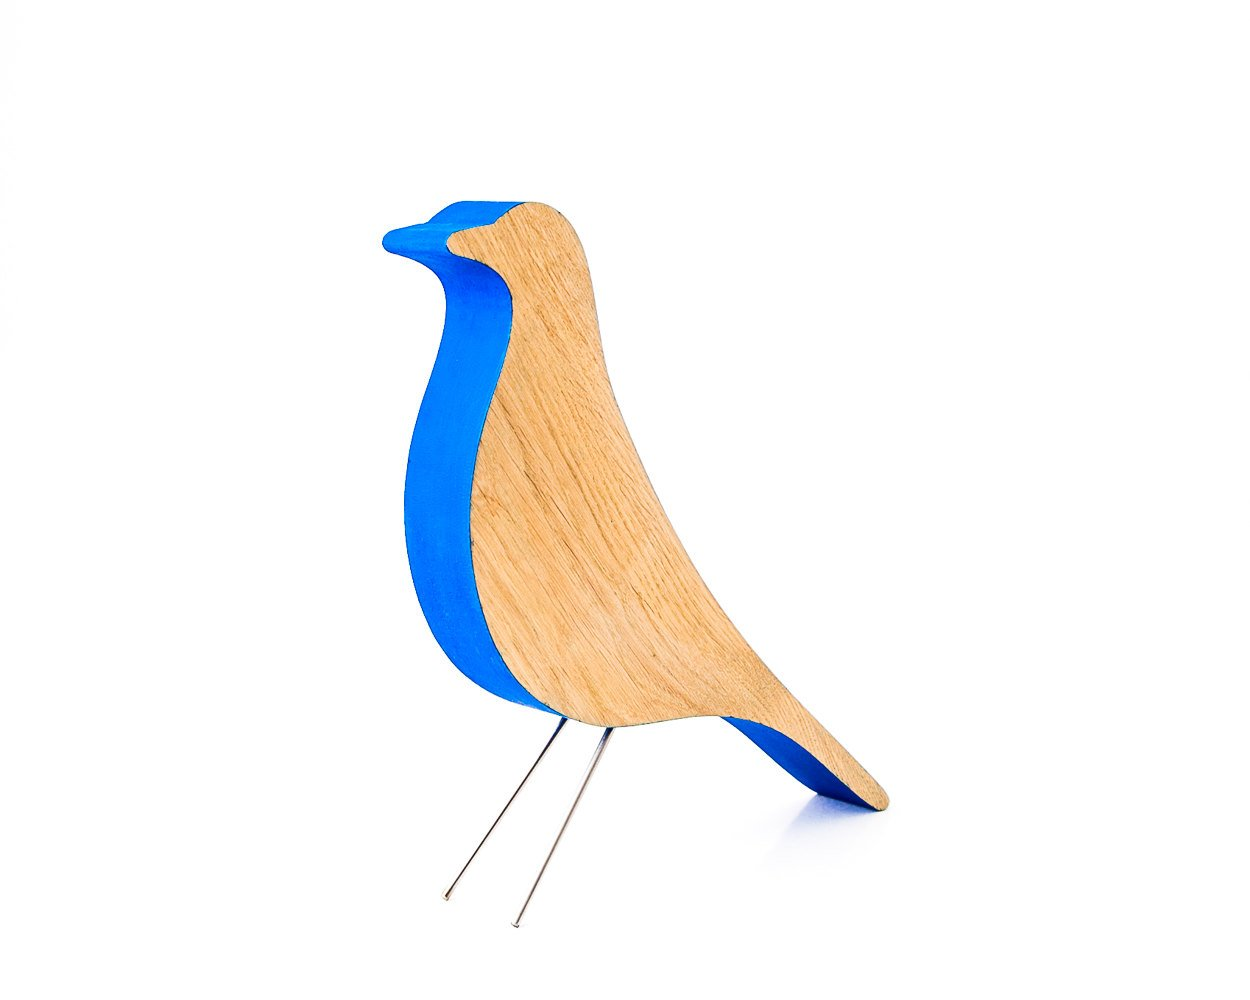 Eames bird remake // modern home decor // design icon simplified deep blue and natural wood // housewarming present // wedding gift - Design Atelier Article